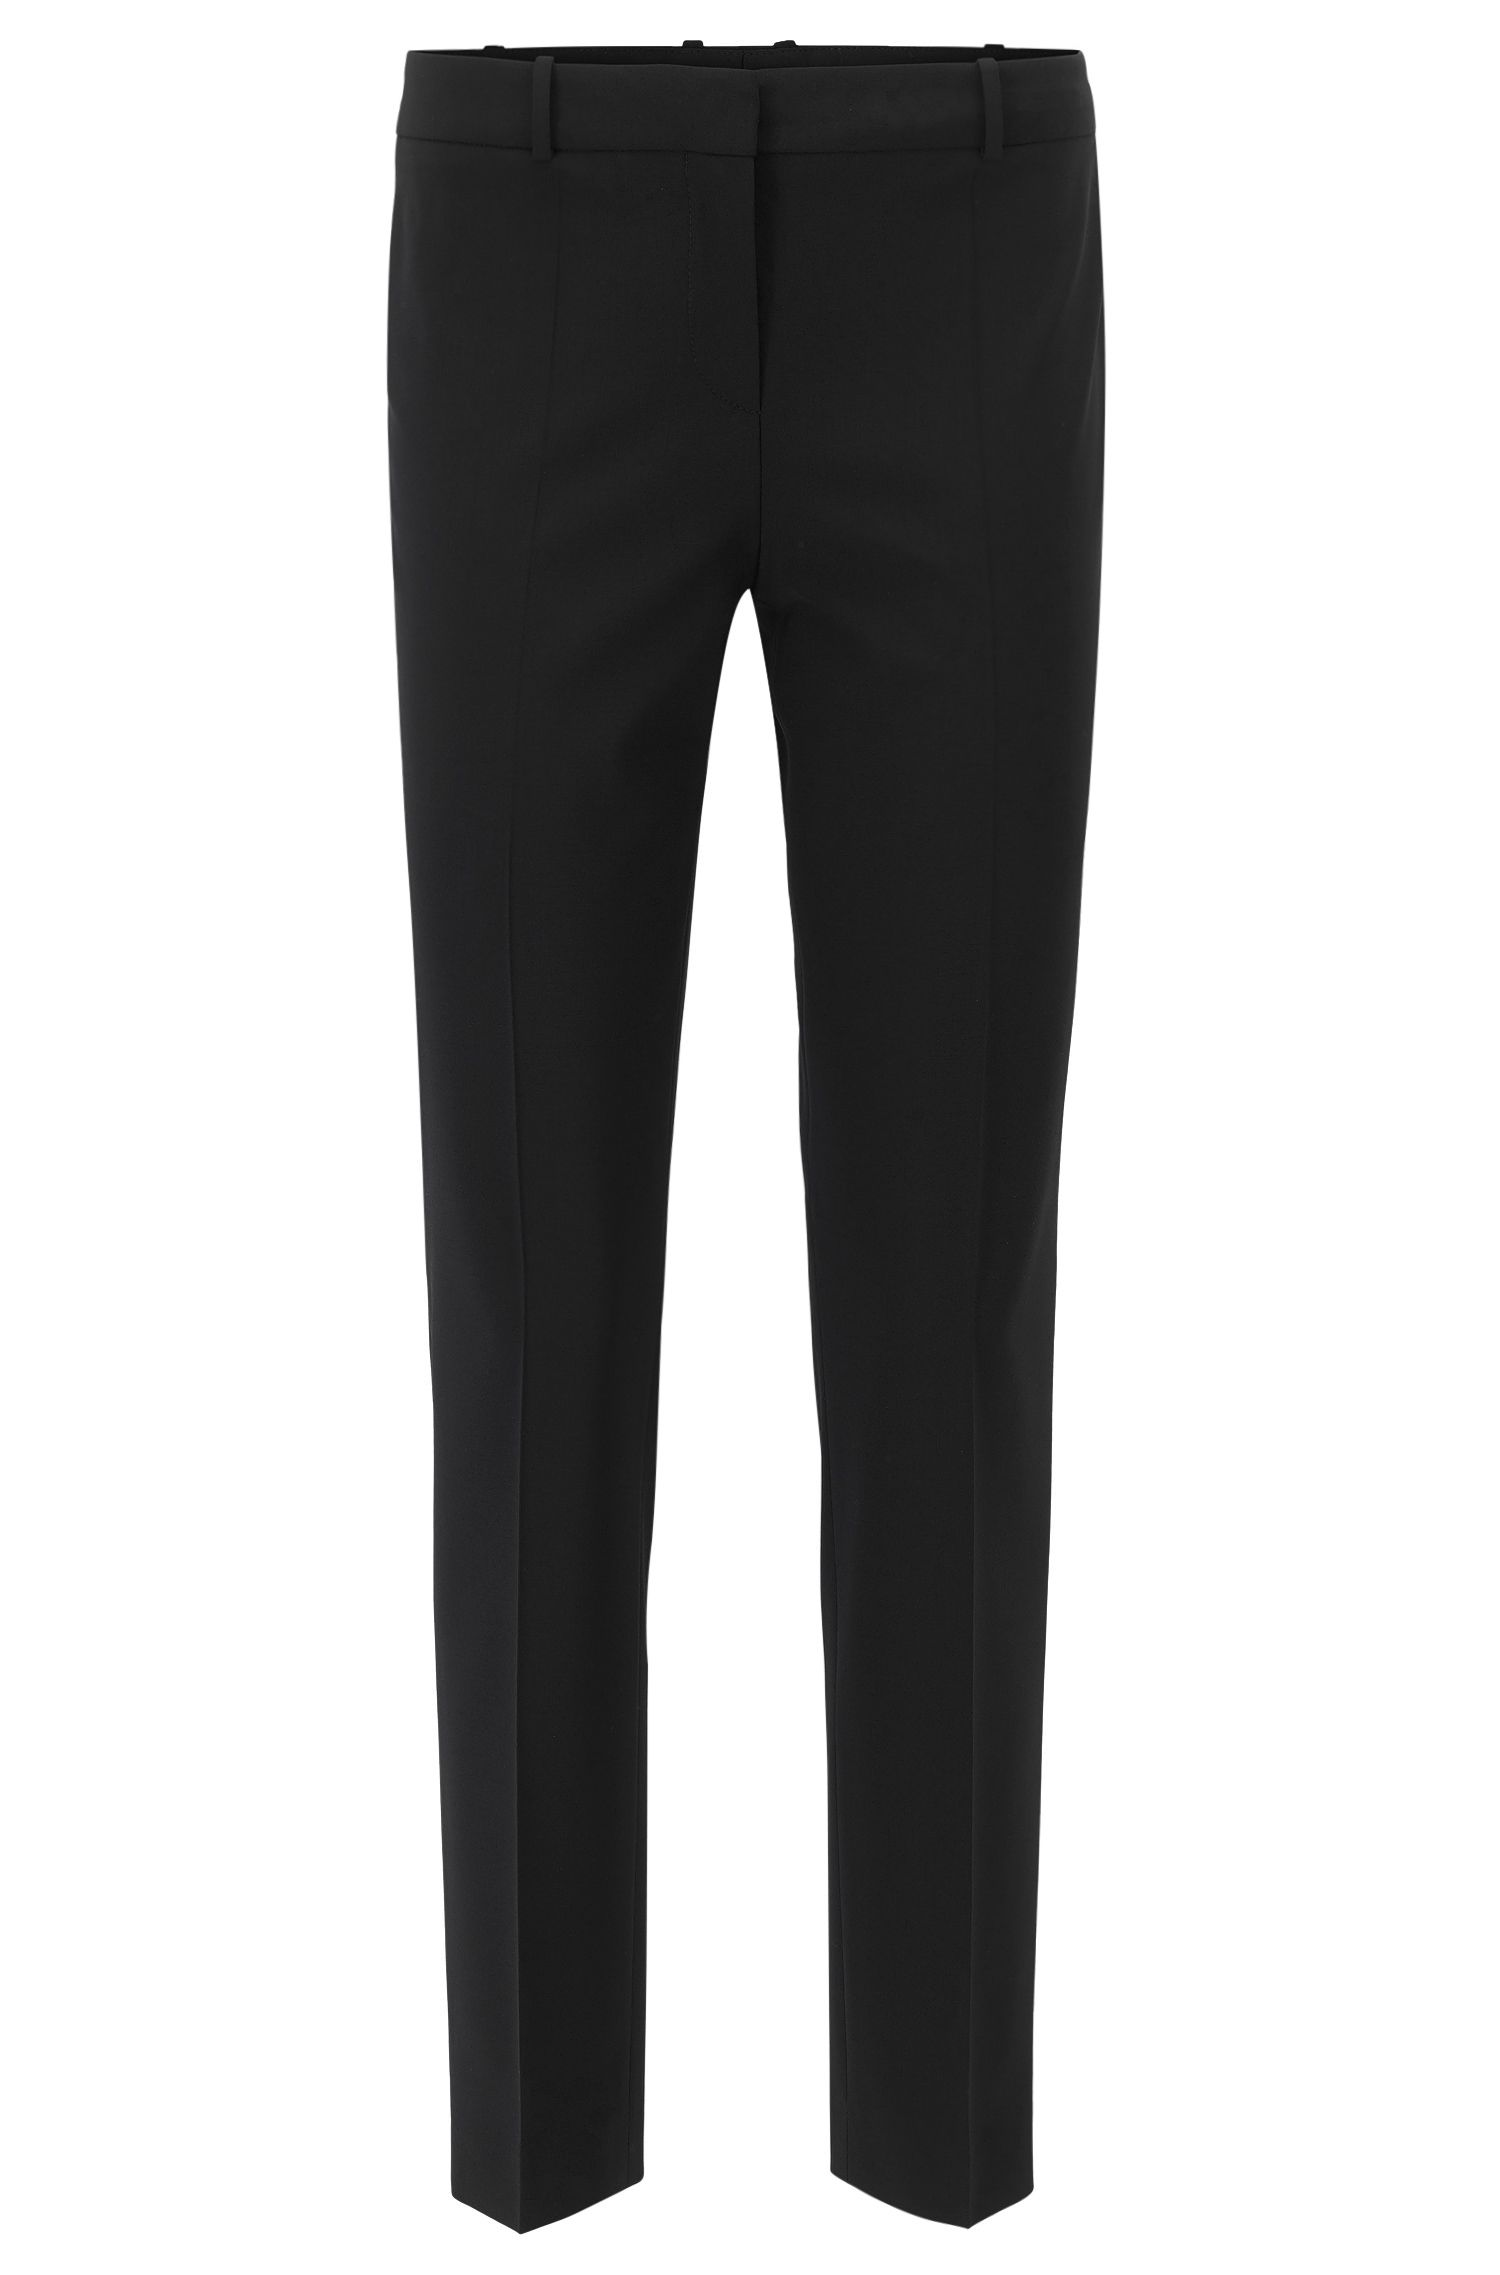 'Tiluna' | Stretch Virgin Wool Dress Pants